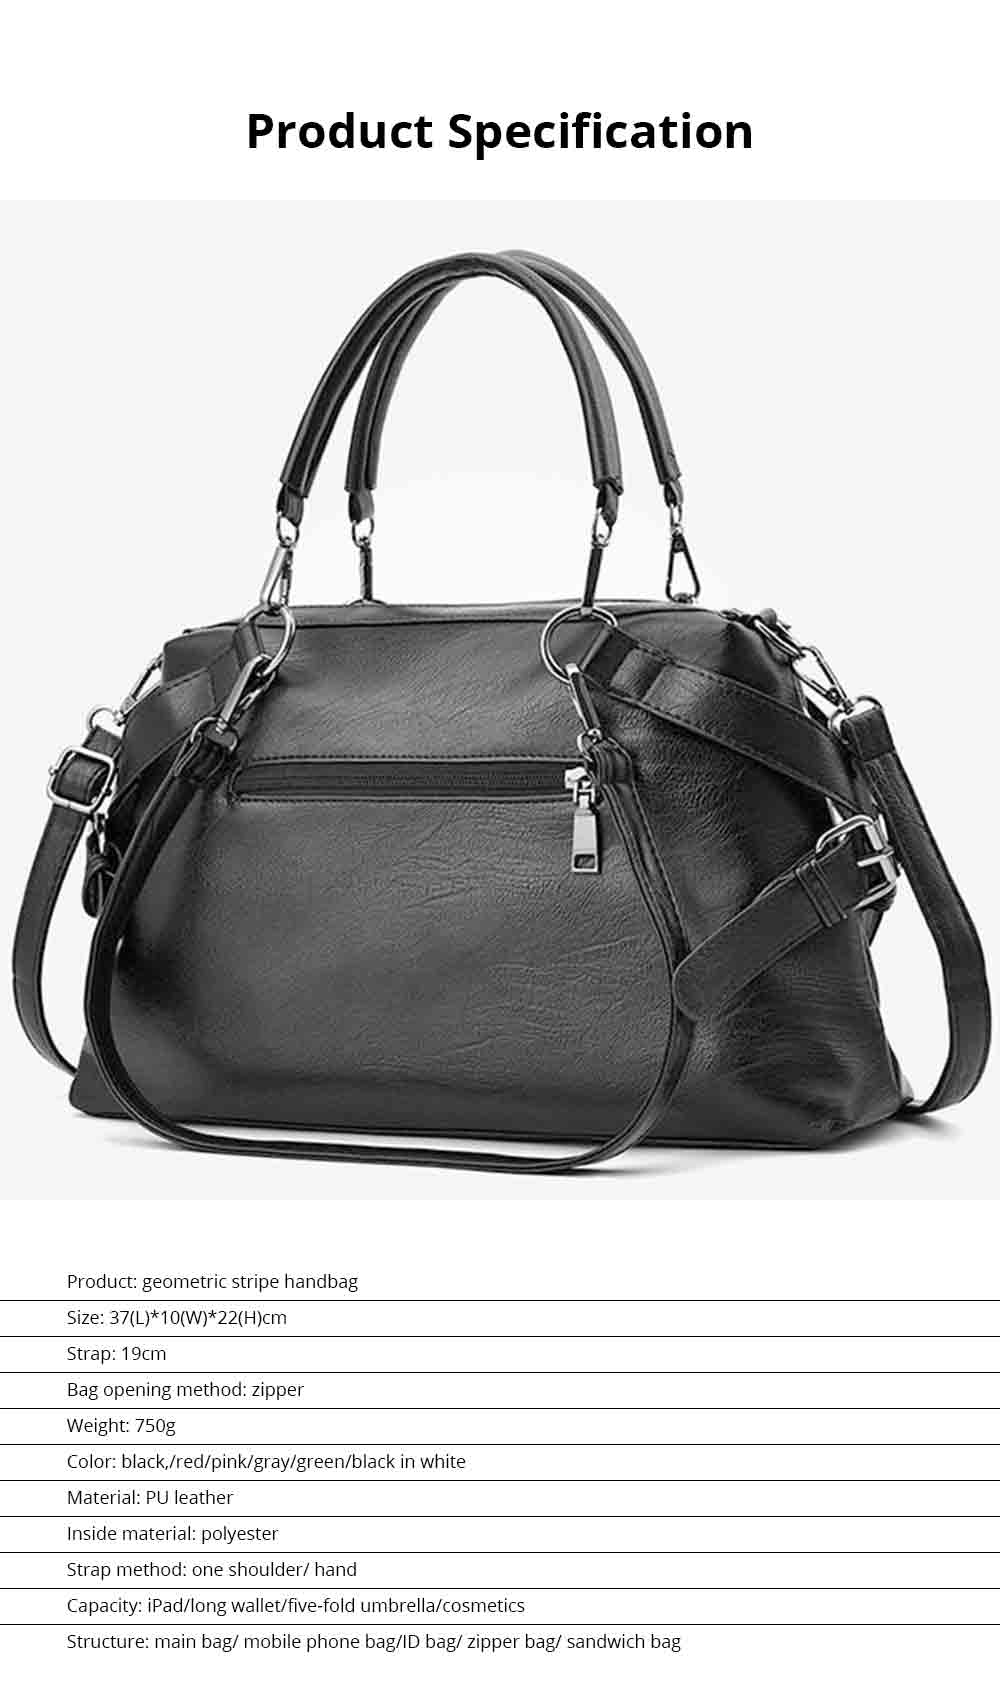 Geometric Stripe Handbag With Detachable Shoulder Strap And Large Capacity, Fashion Elegant PU Leather Bag for Ladies 7